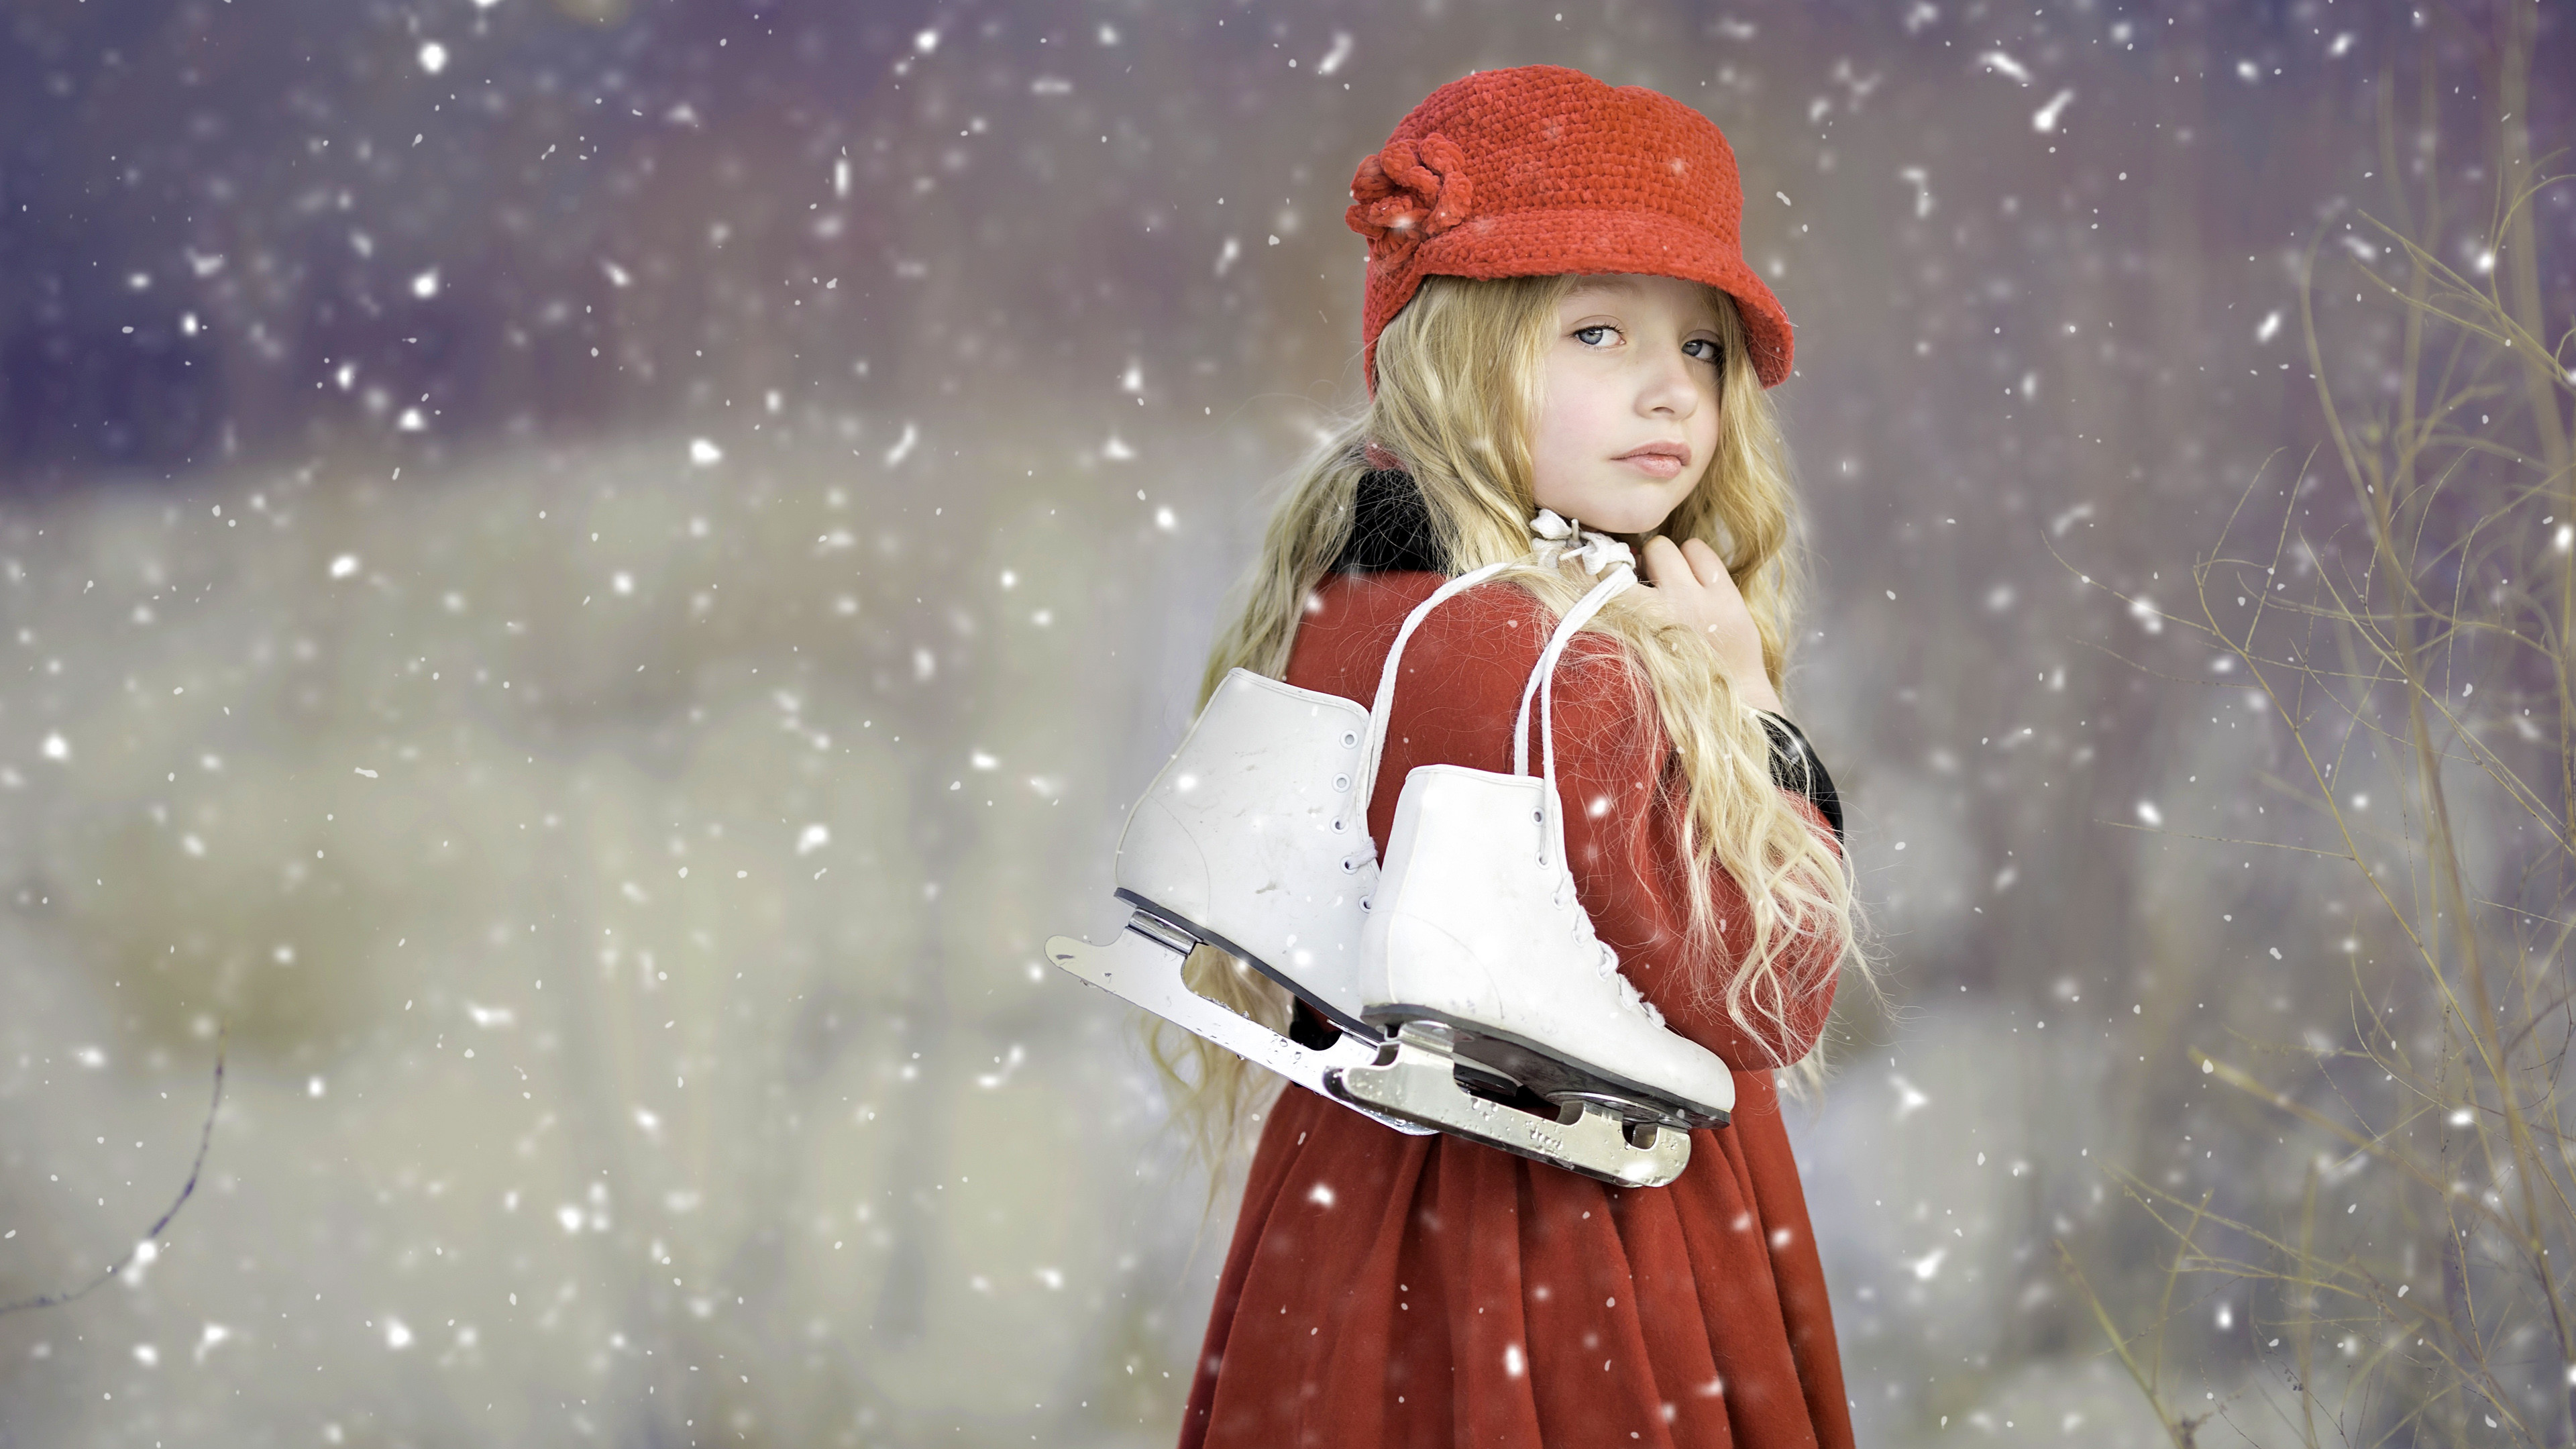 Res: 3840x2160, Cute Girl Ice Skates Wallpaper